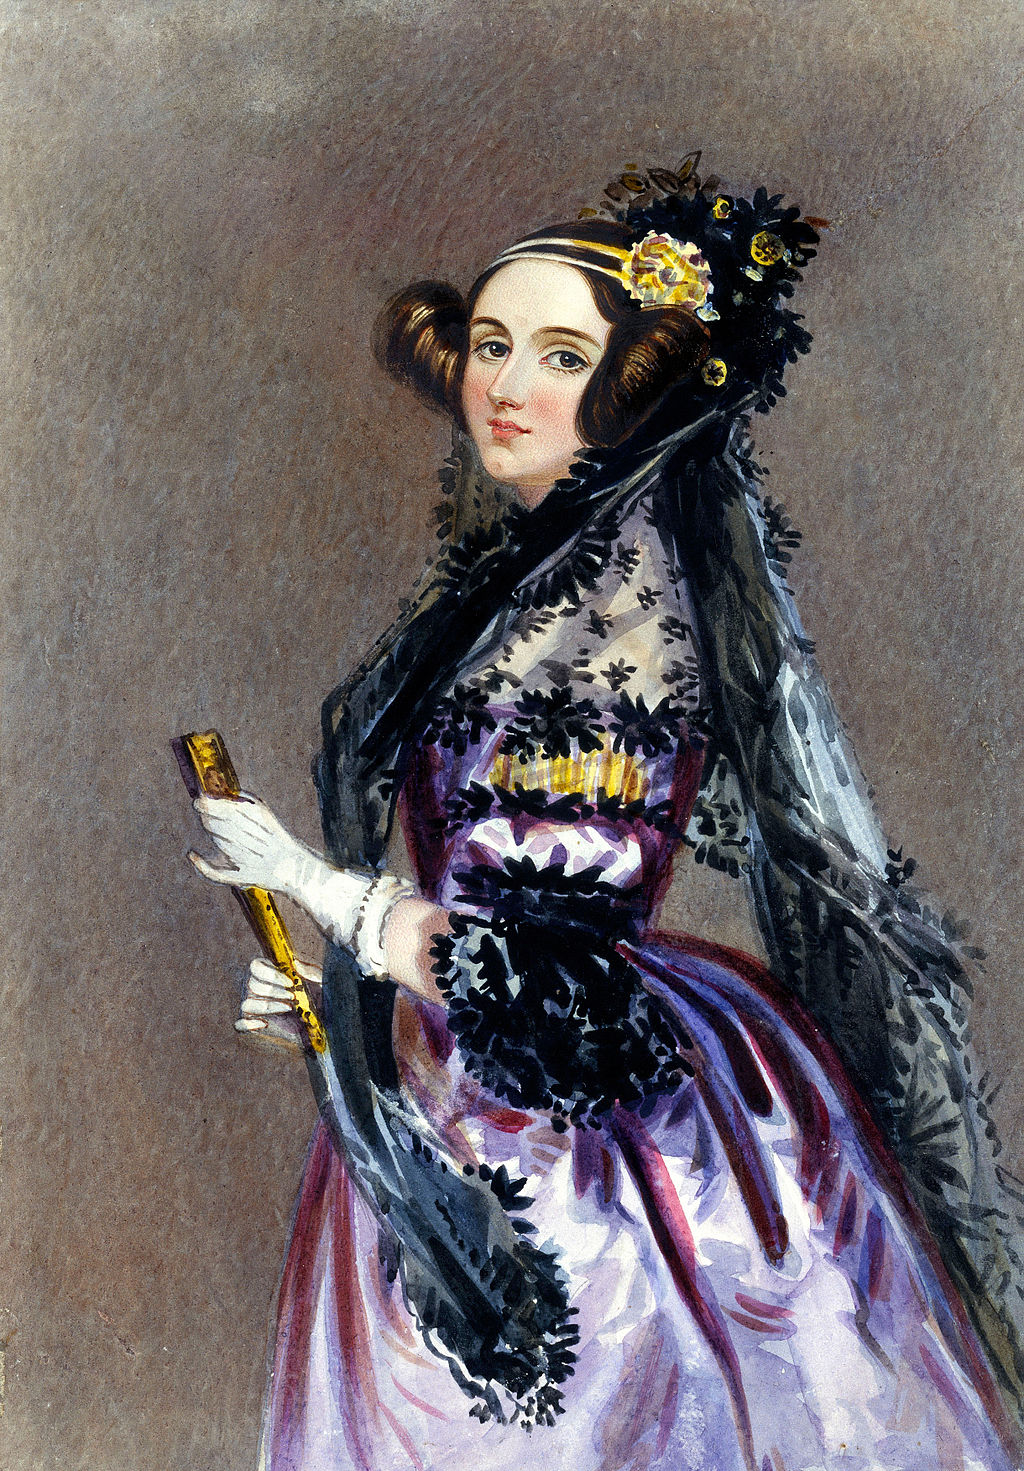 A watercolor portrait of Ada King, Countess of Lovelace, painted by Alfred Edward Chalon. Photo courtesy of Wikimedia Commons.